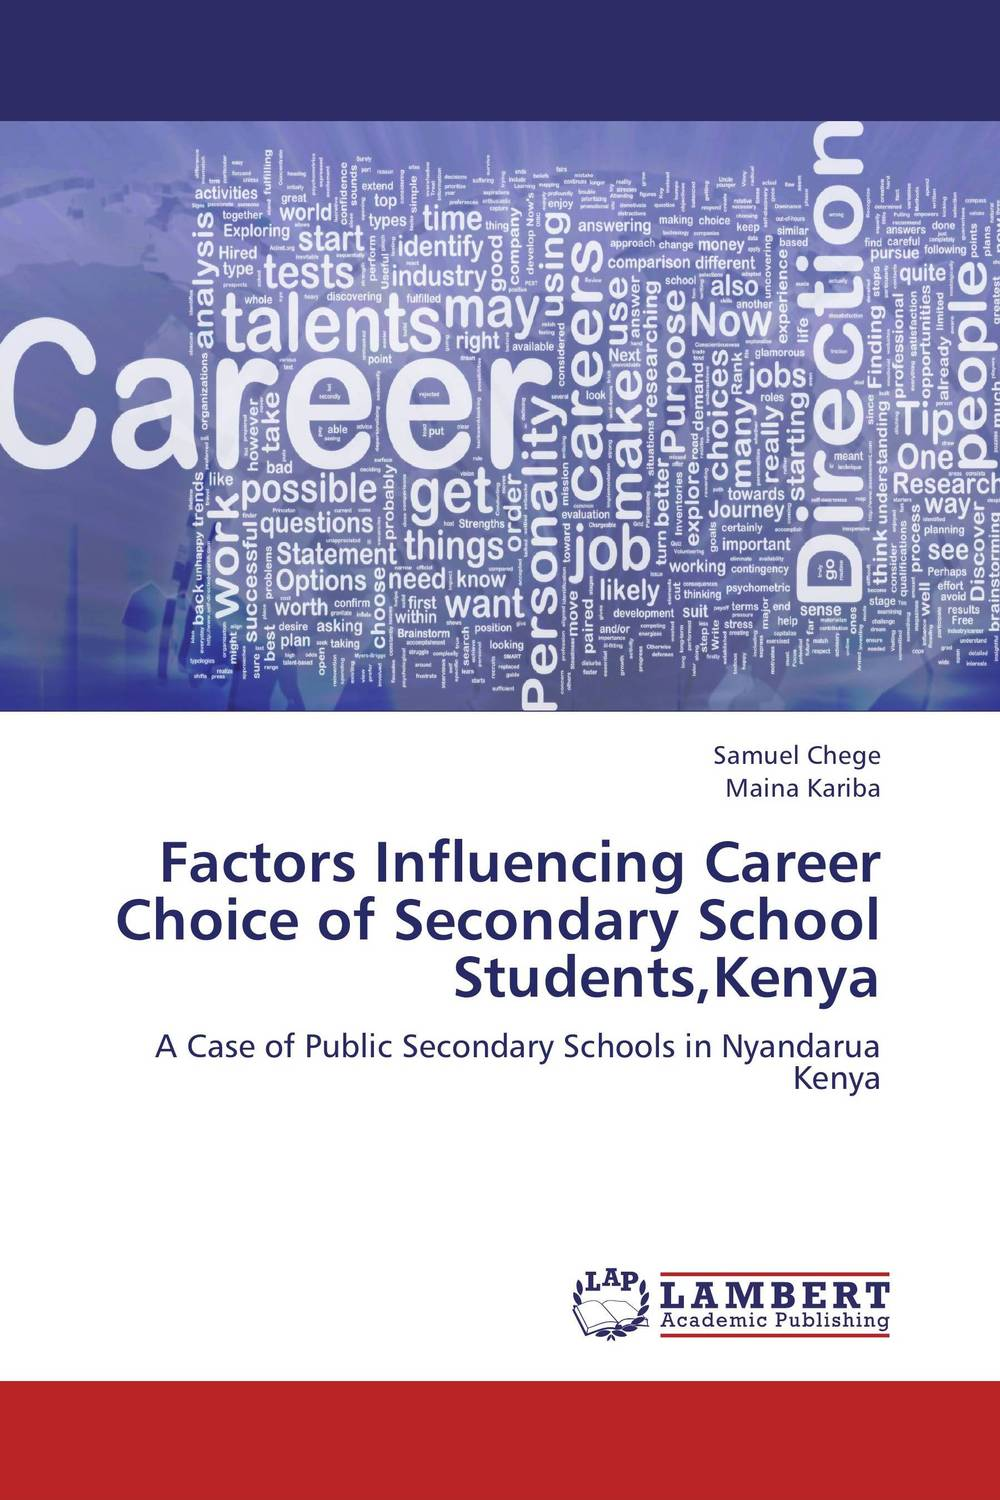 Factors Influencing Career Choice of Secondary School Students,Kenya abdullah alzahrani and hamid osman attitudes of medical students regarding fm as a career choice